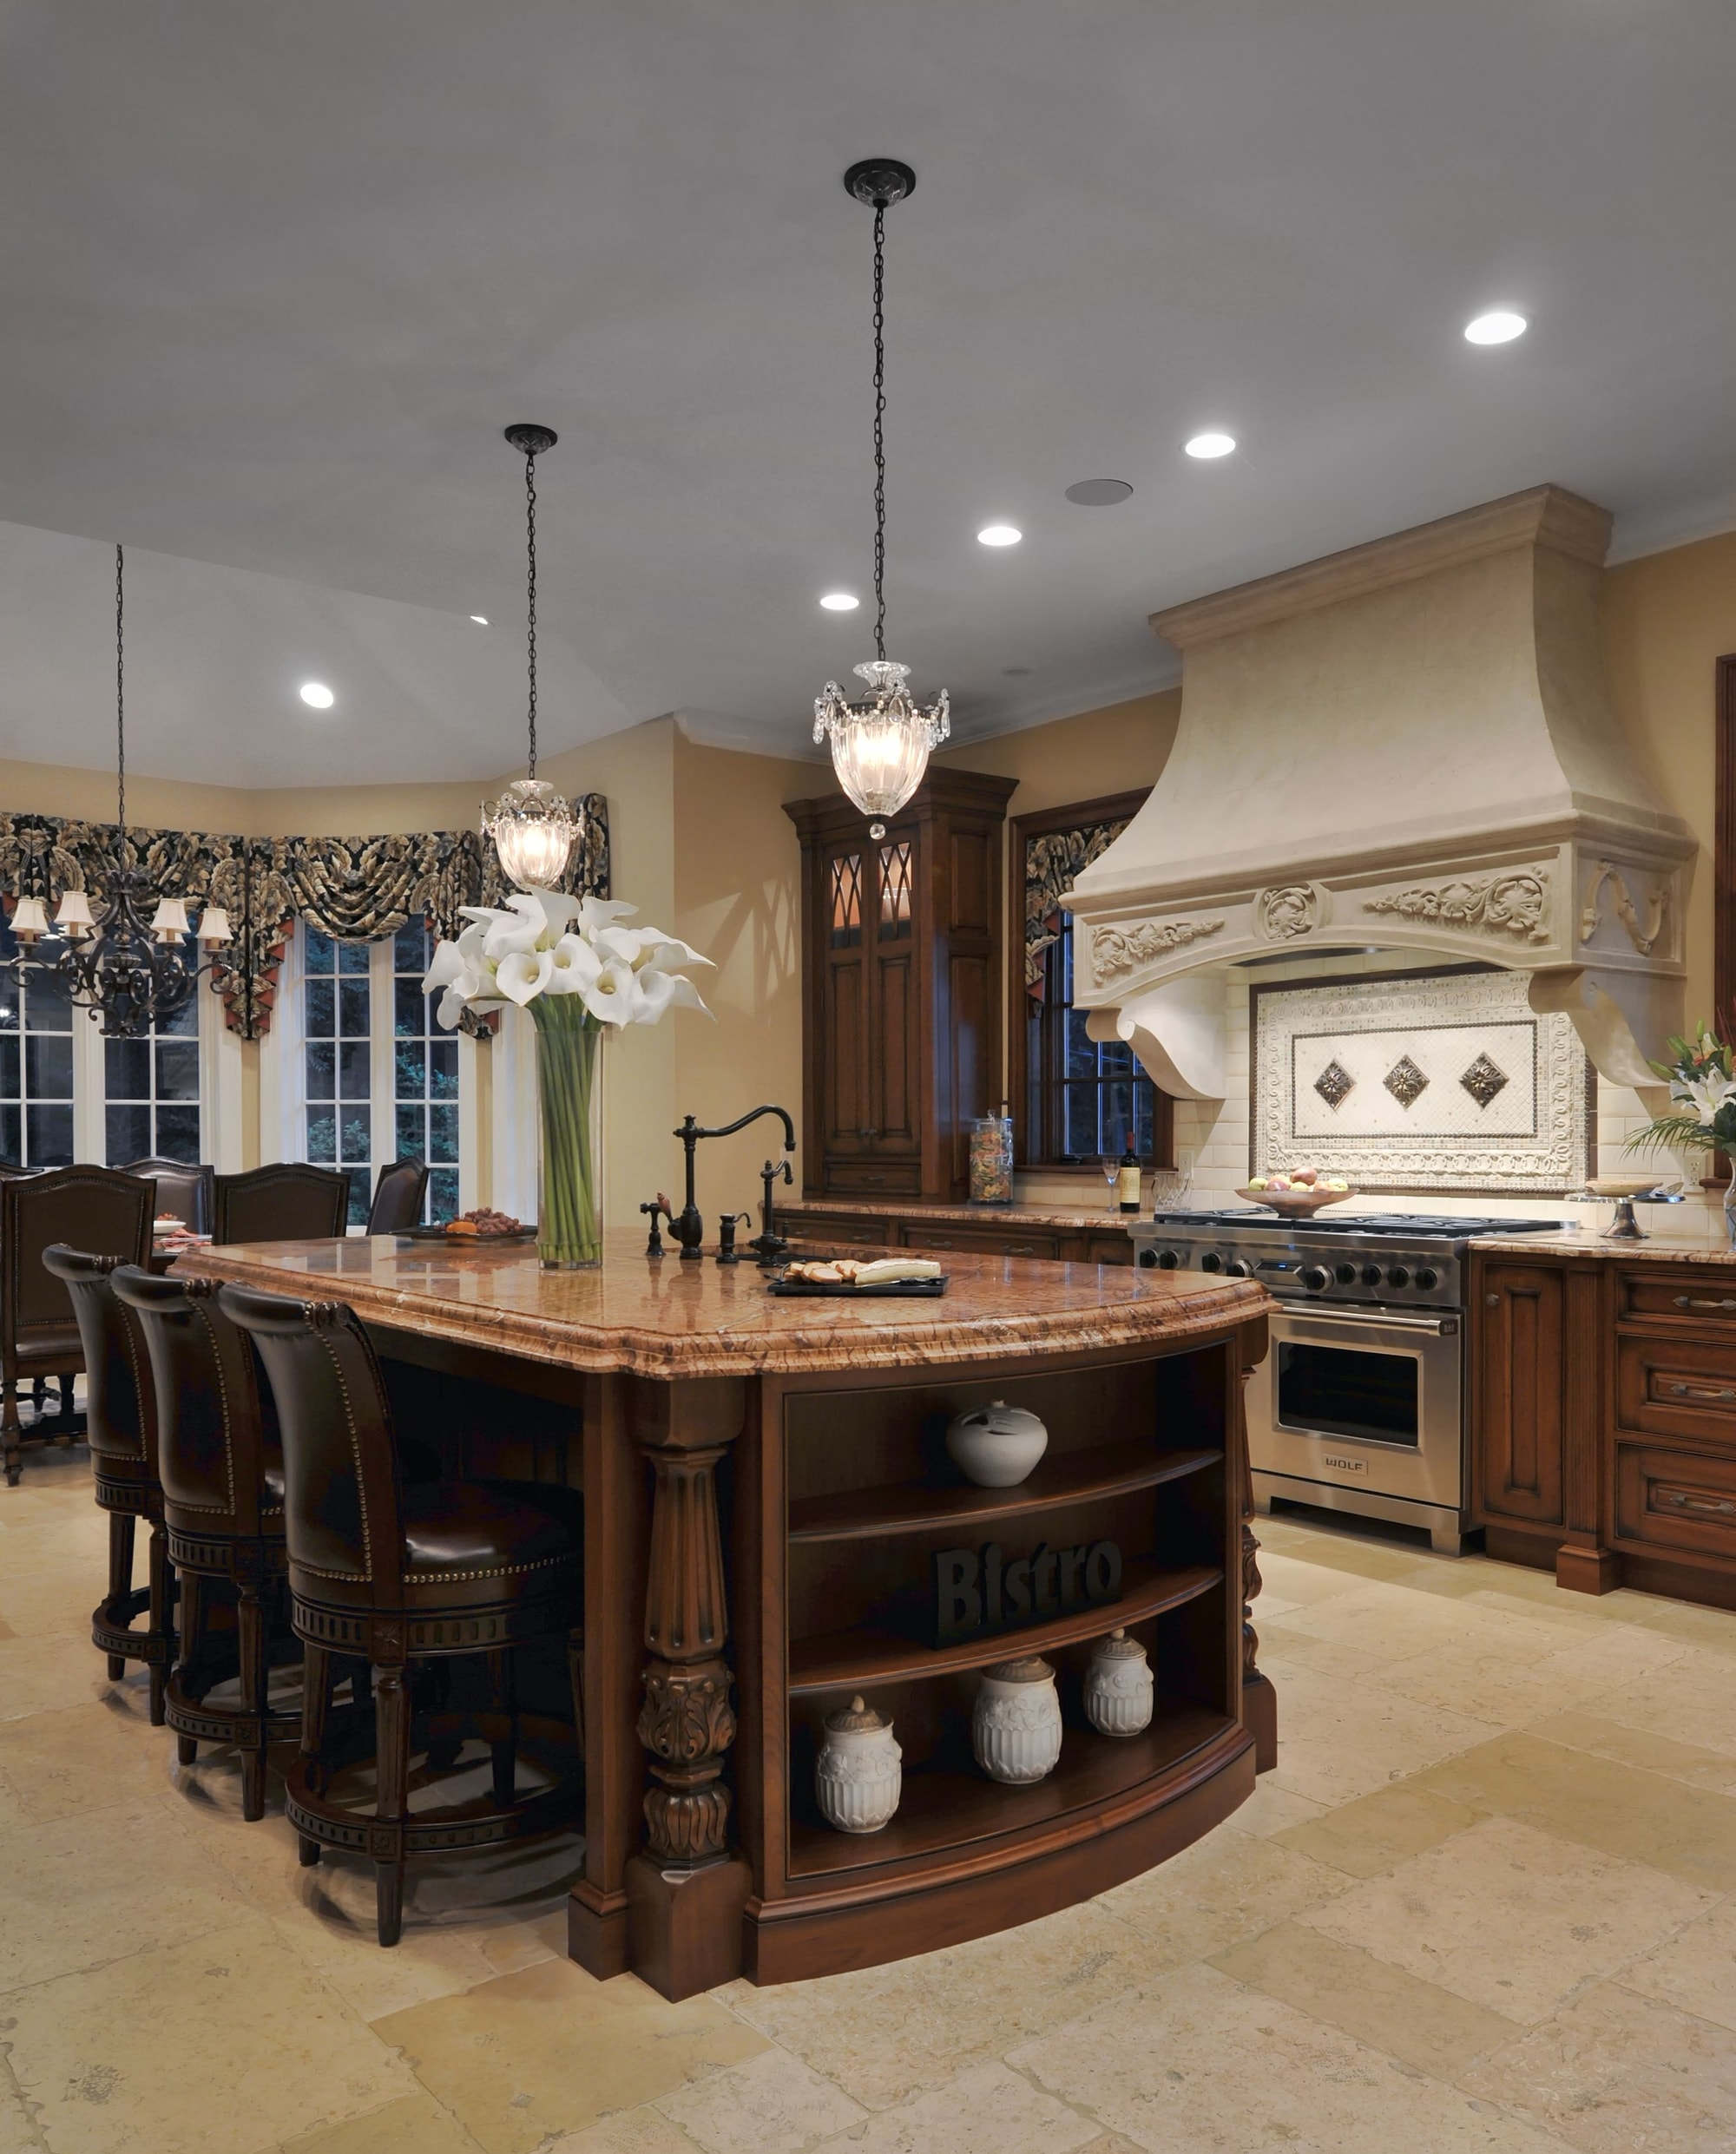 Traditional style kitchen with customer counter and wooden chair